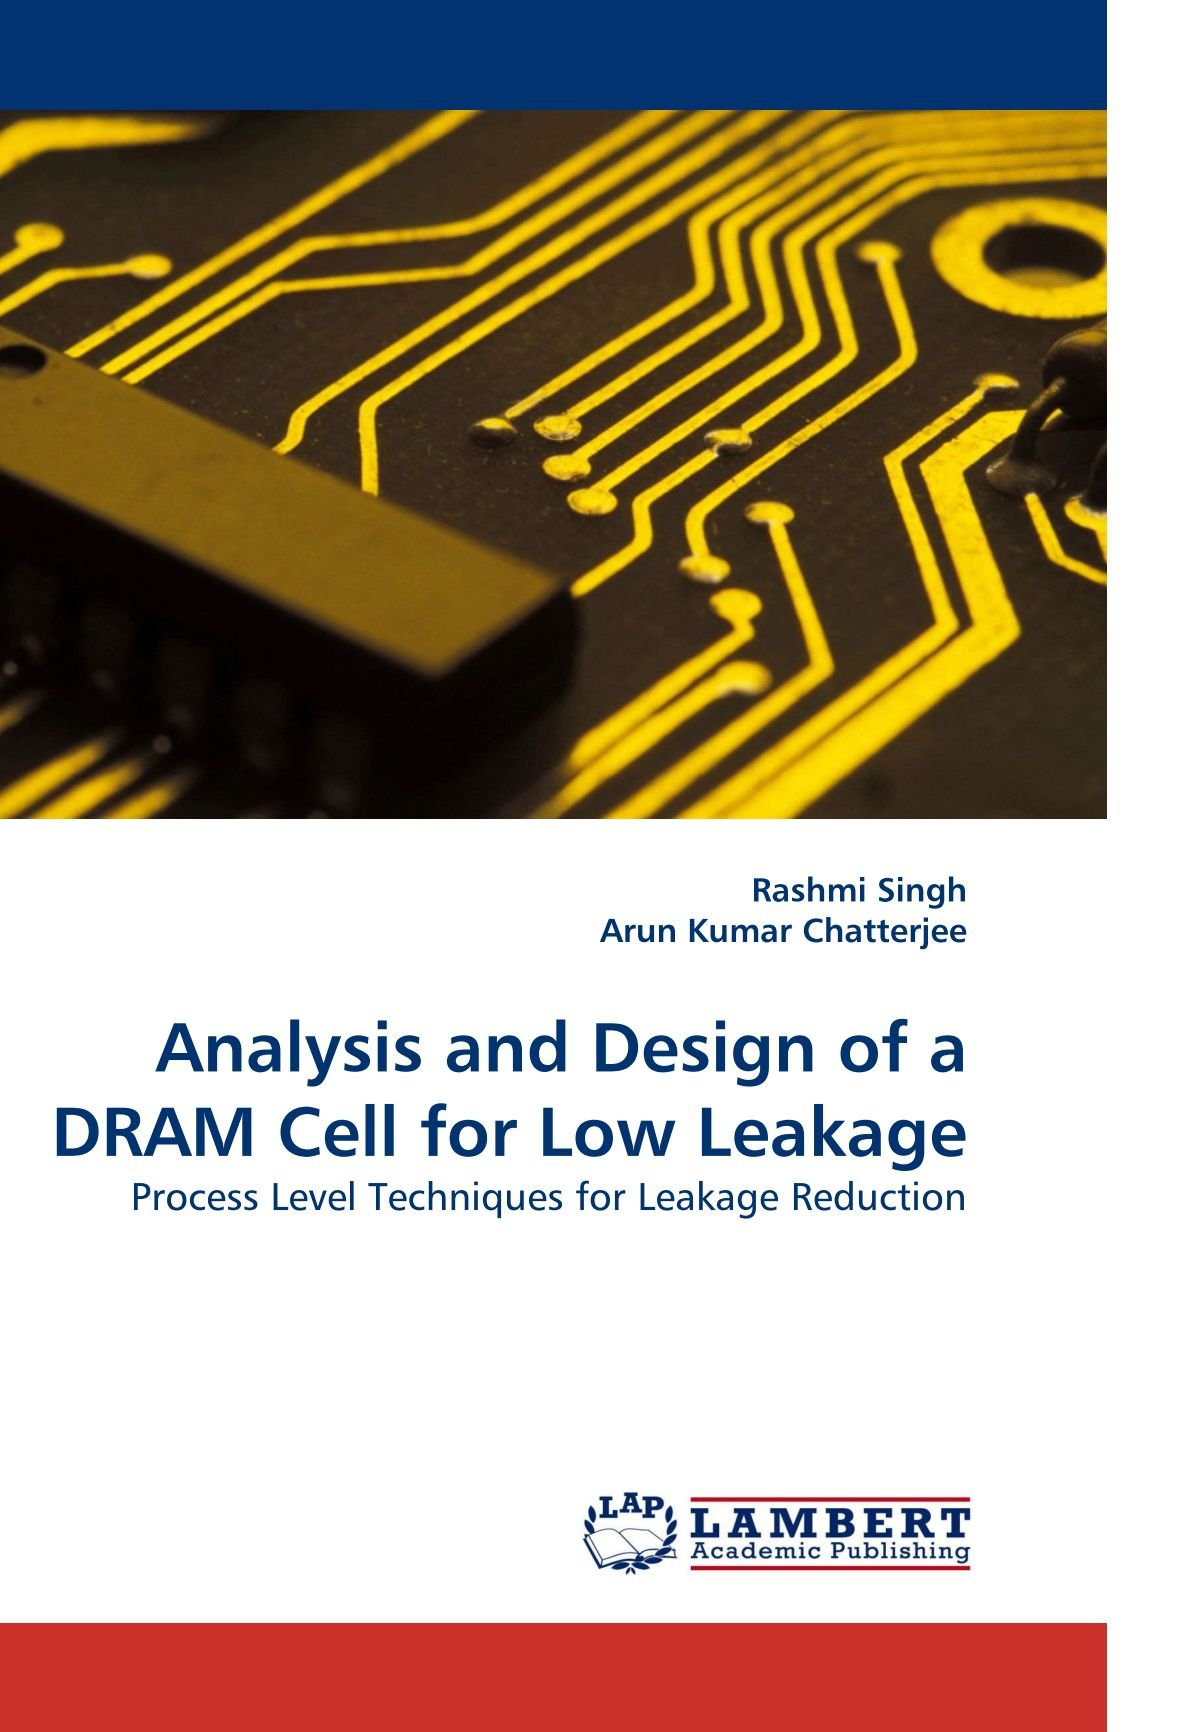 Analysis and Design of a DRAM Cell for Low Leakage: Process Level Techniques for Leakage Reduction pdf